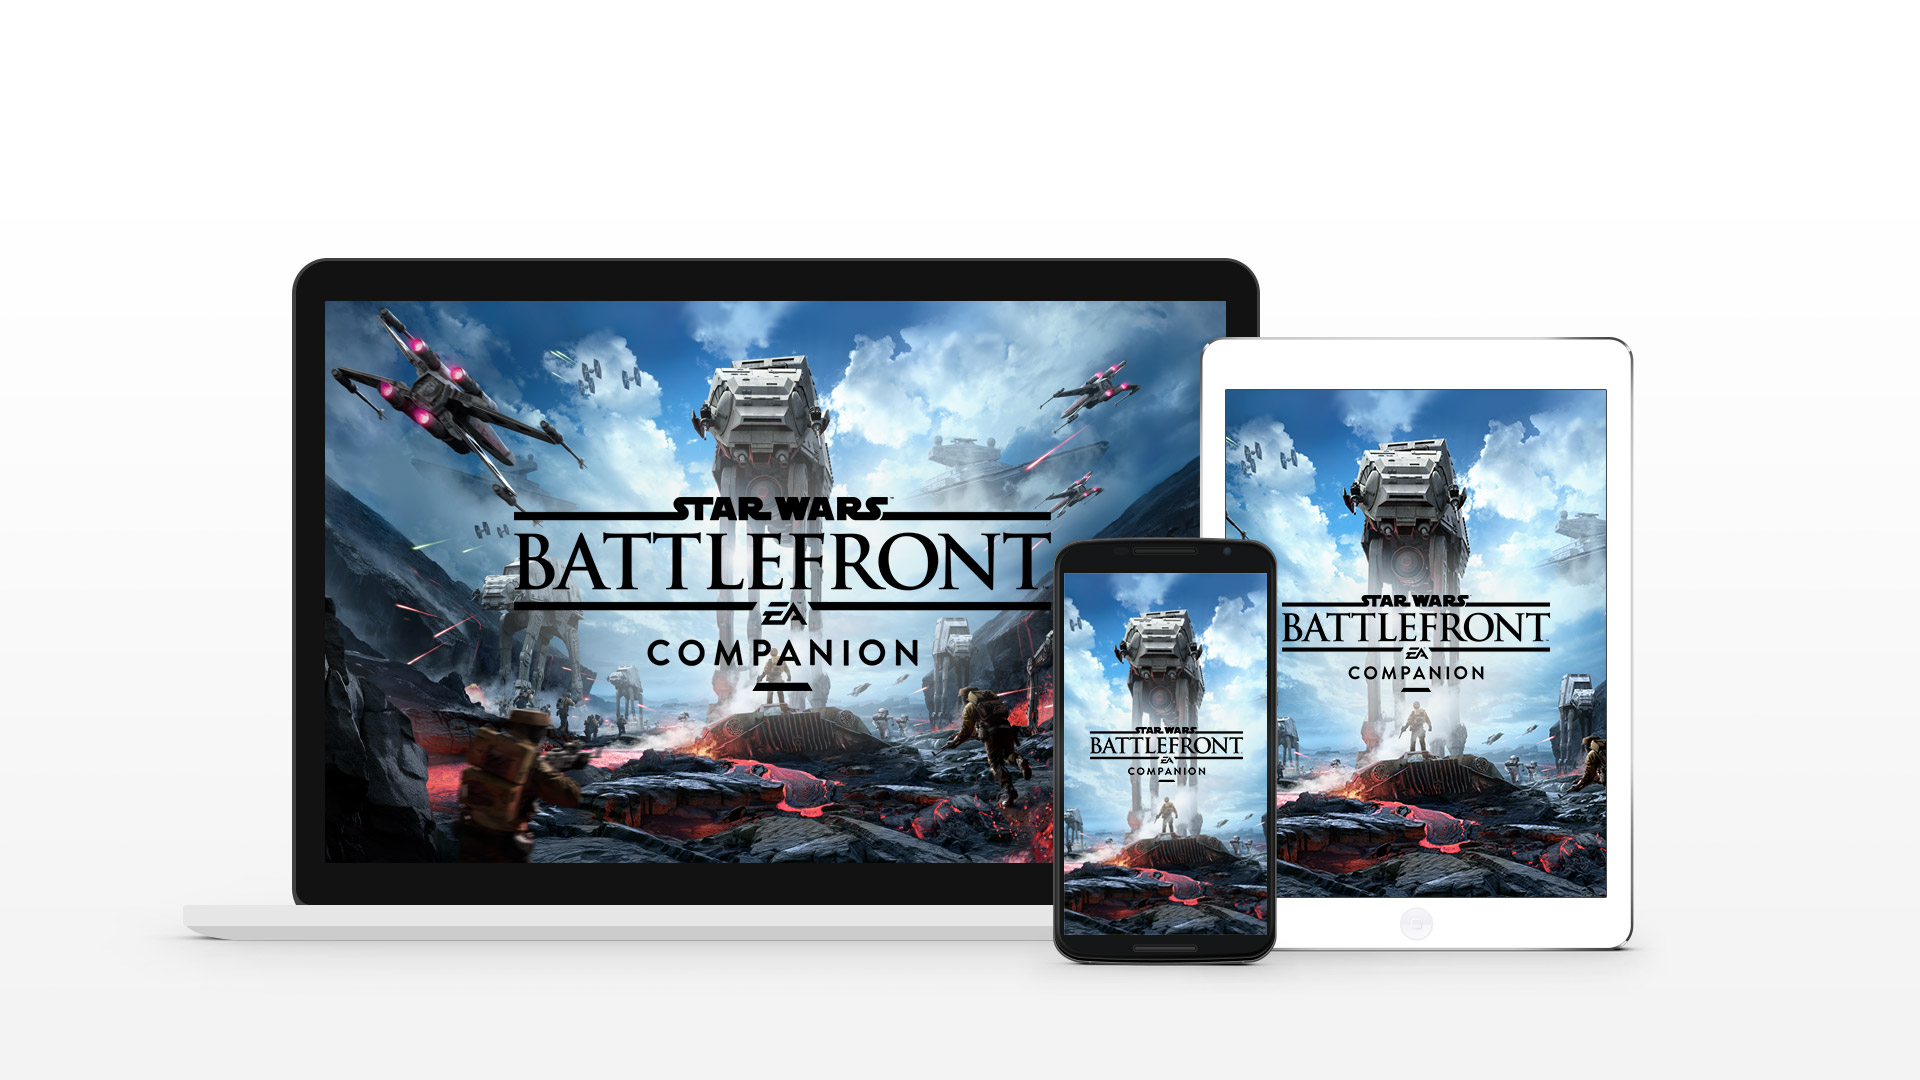 star wars battlefront app available for ios & android